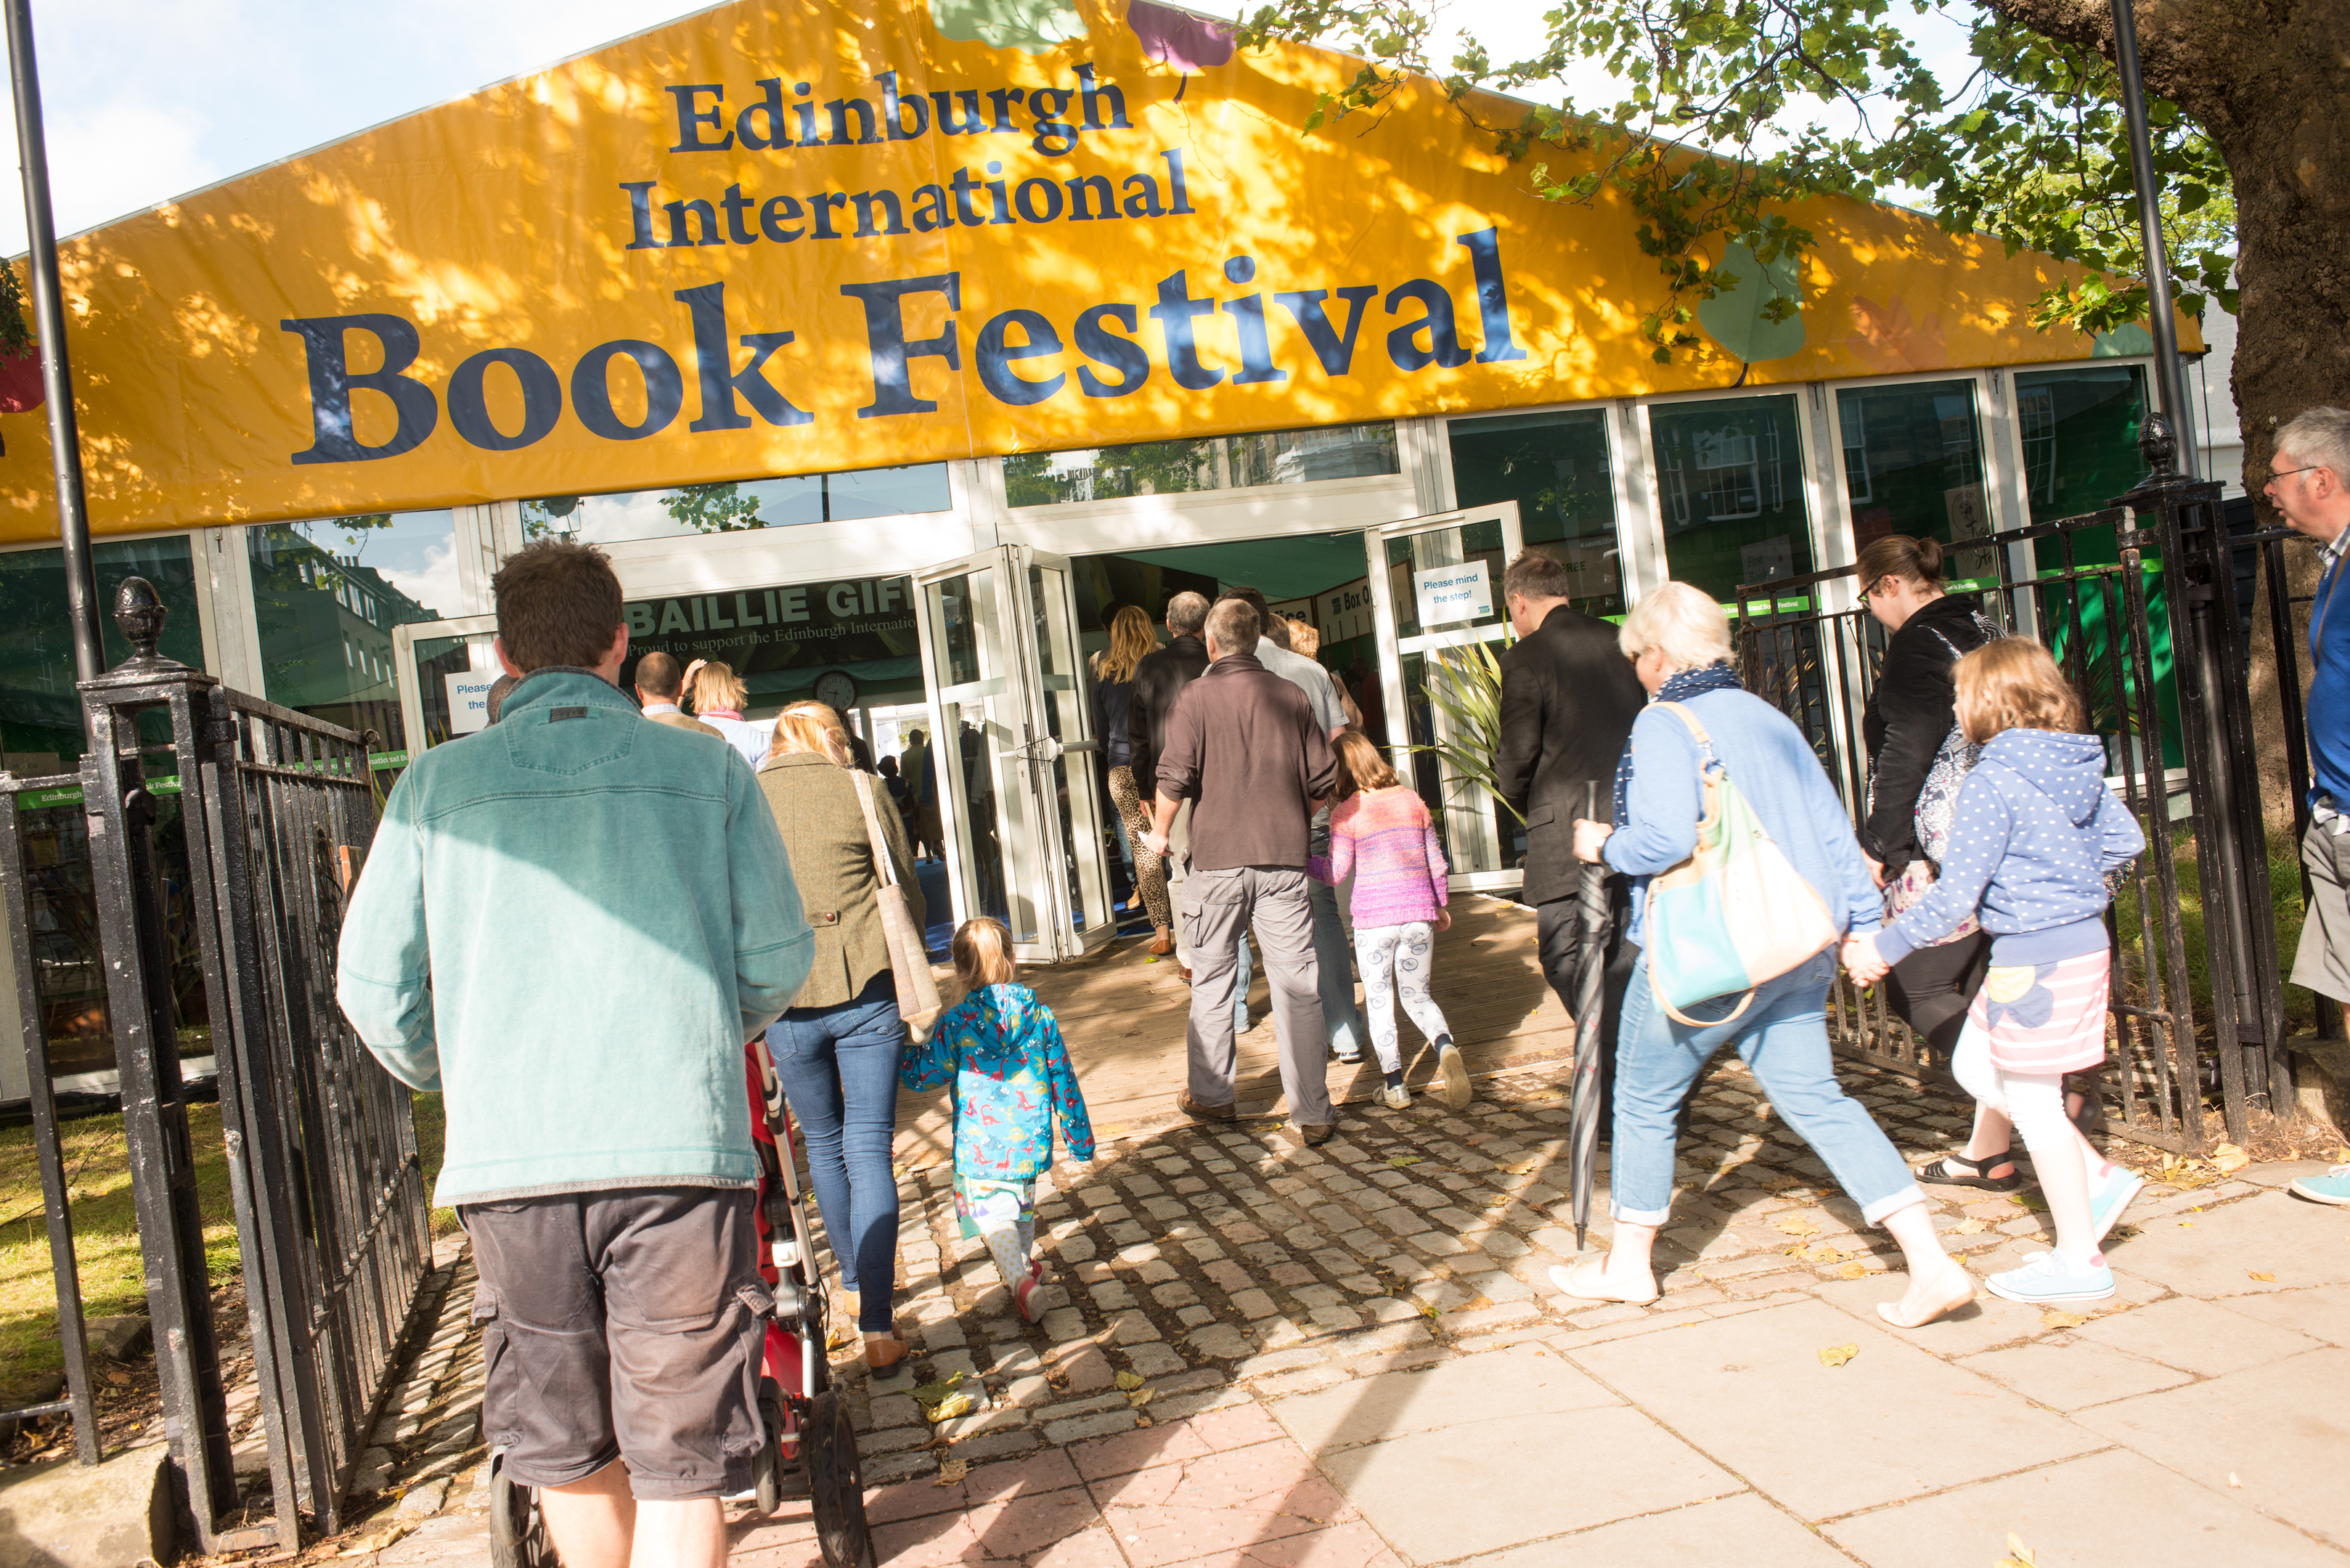 Edinburgh International Book Festival (Alan McCredie/Edinburgh International Book Festival)